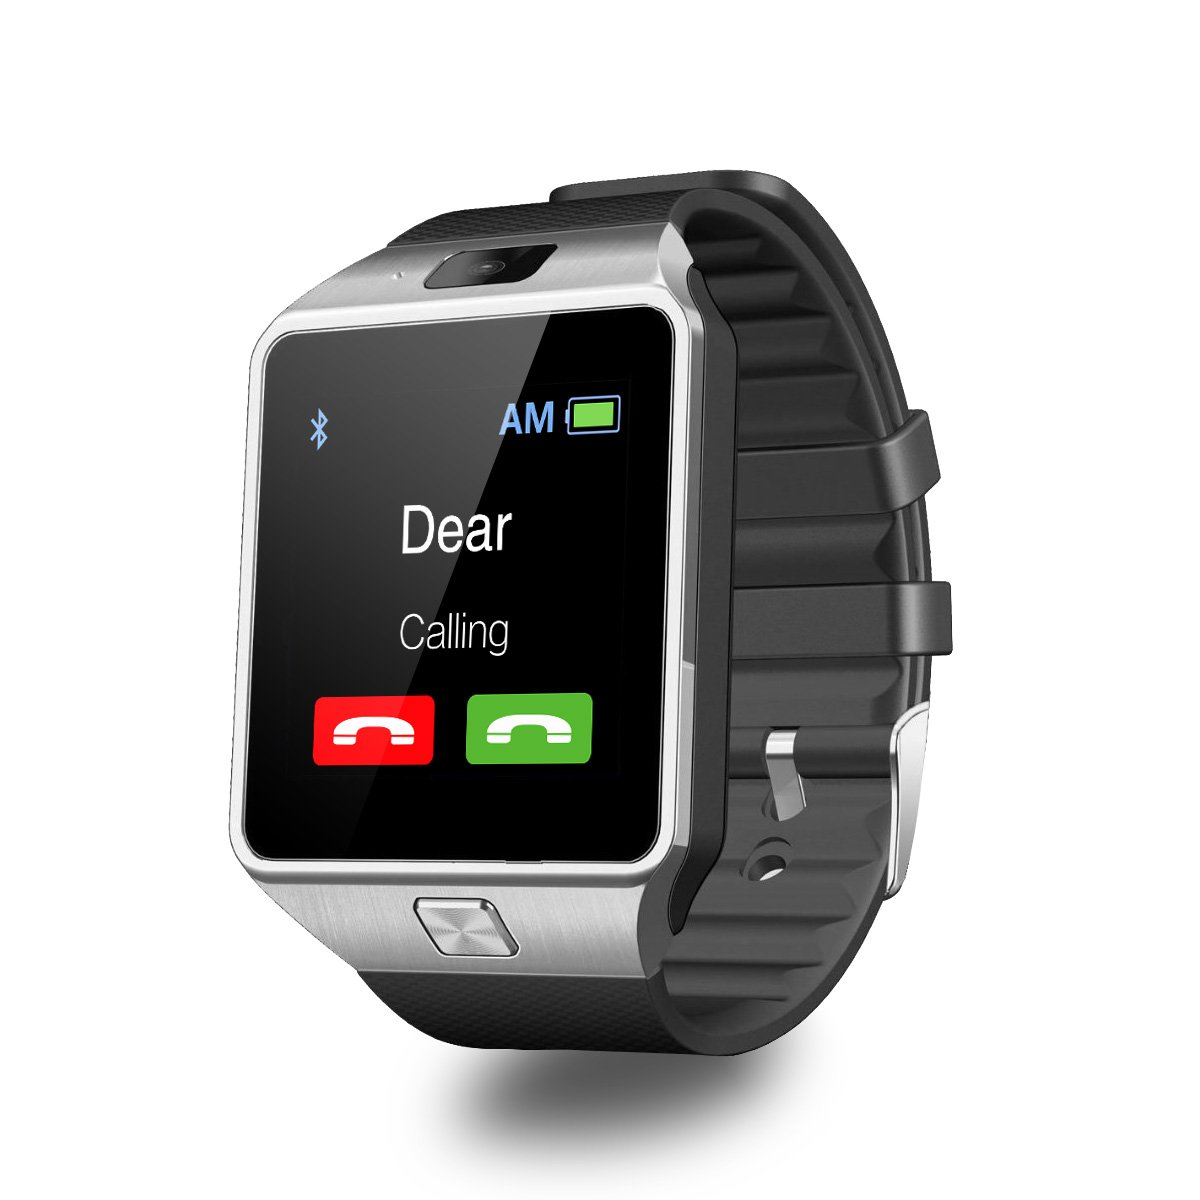 38874733ded Amazon.com  DZ09 Smart Watch Android Sim Card Slot Smartwatch with TF Card  Camera by Heshi Inc  Electronics